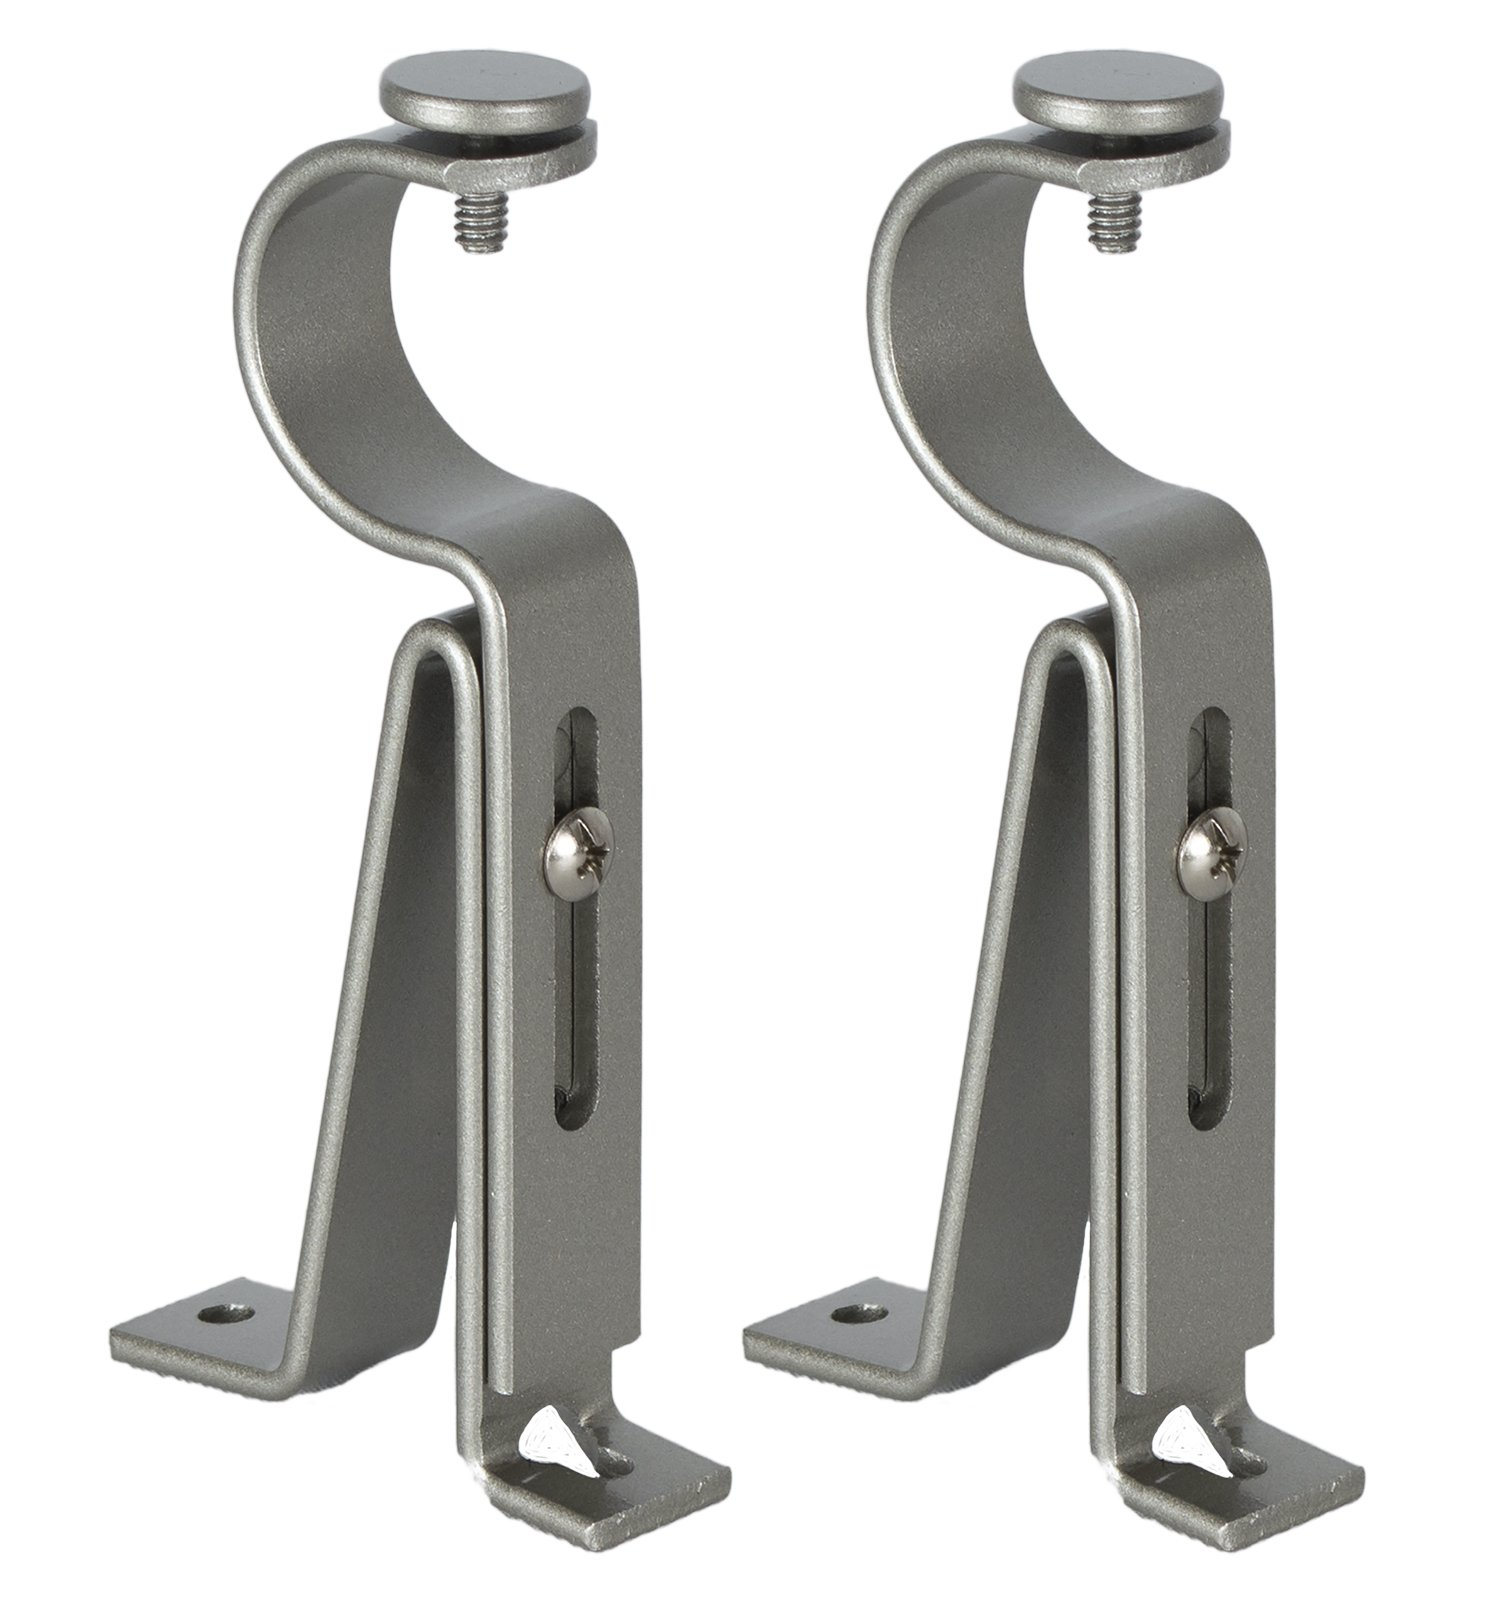 Urbanest Adjustable Curtain Rod Bracket, up to 1 1/8-inch Diameter Rods, 2 pieces, Pewter